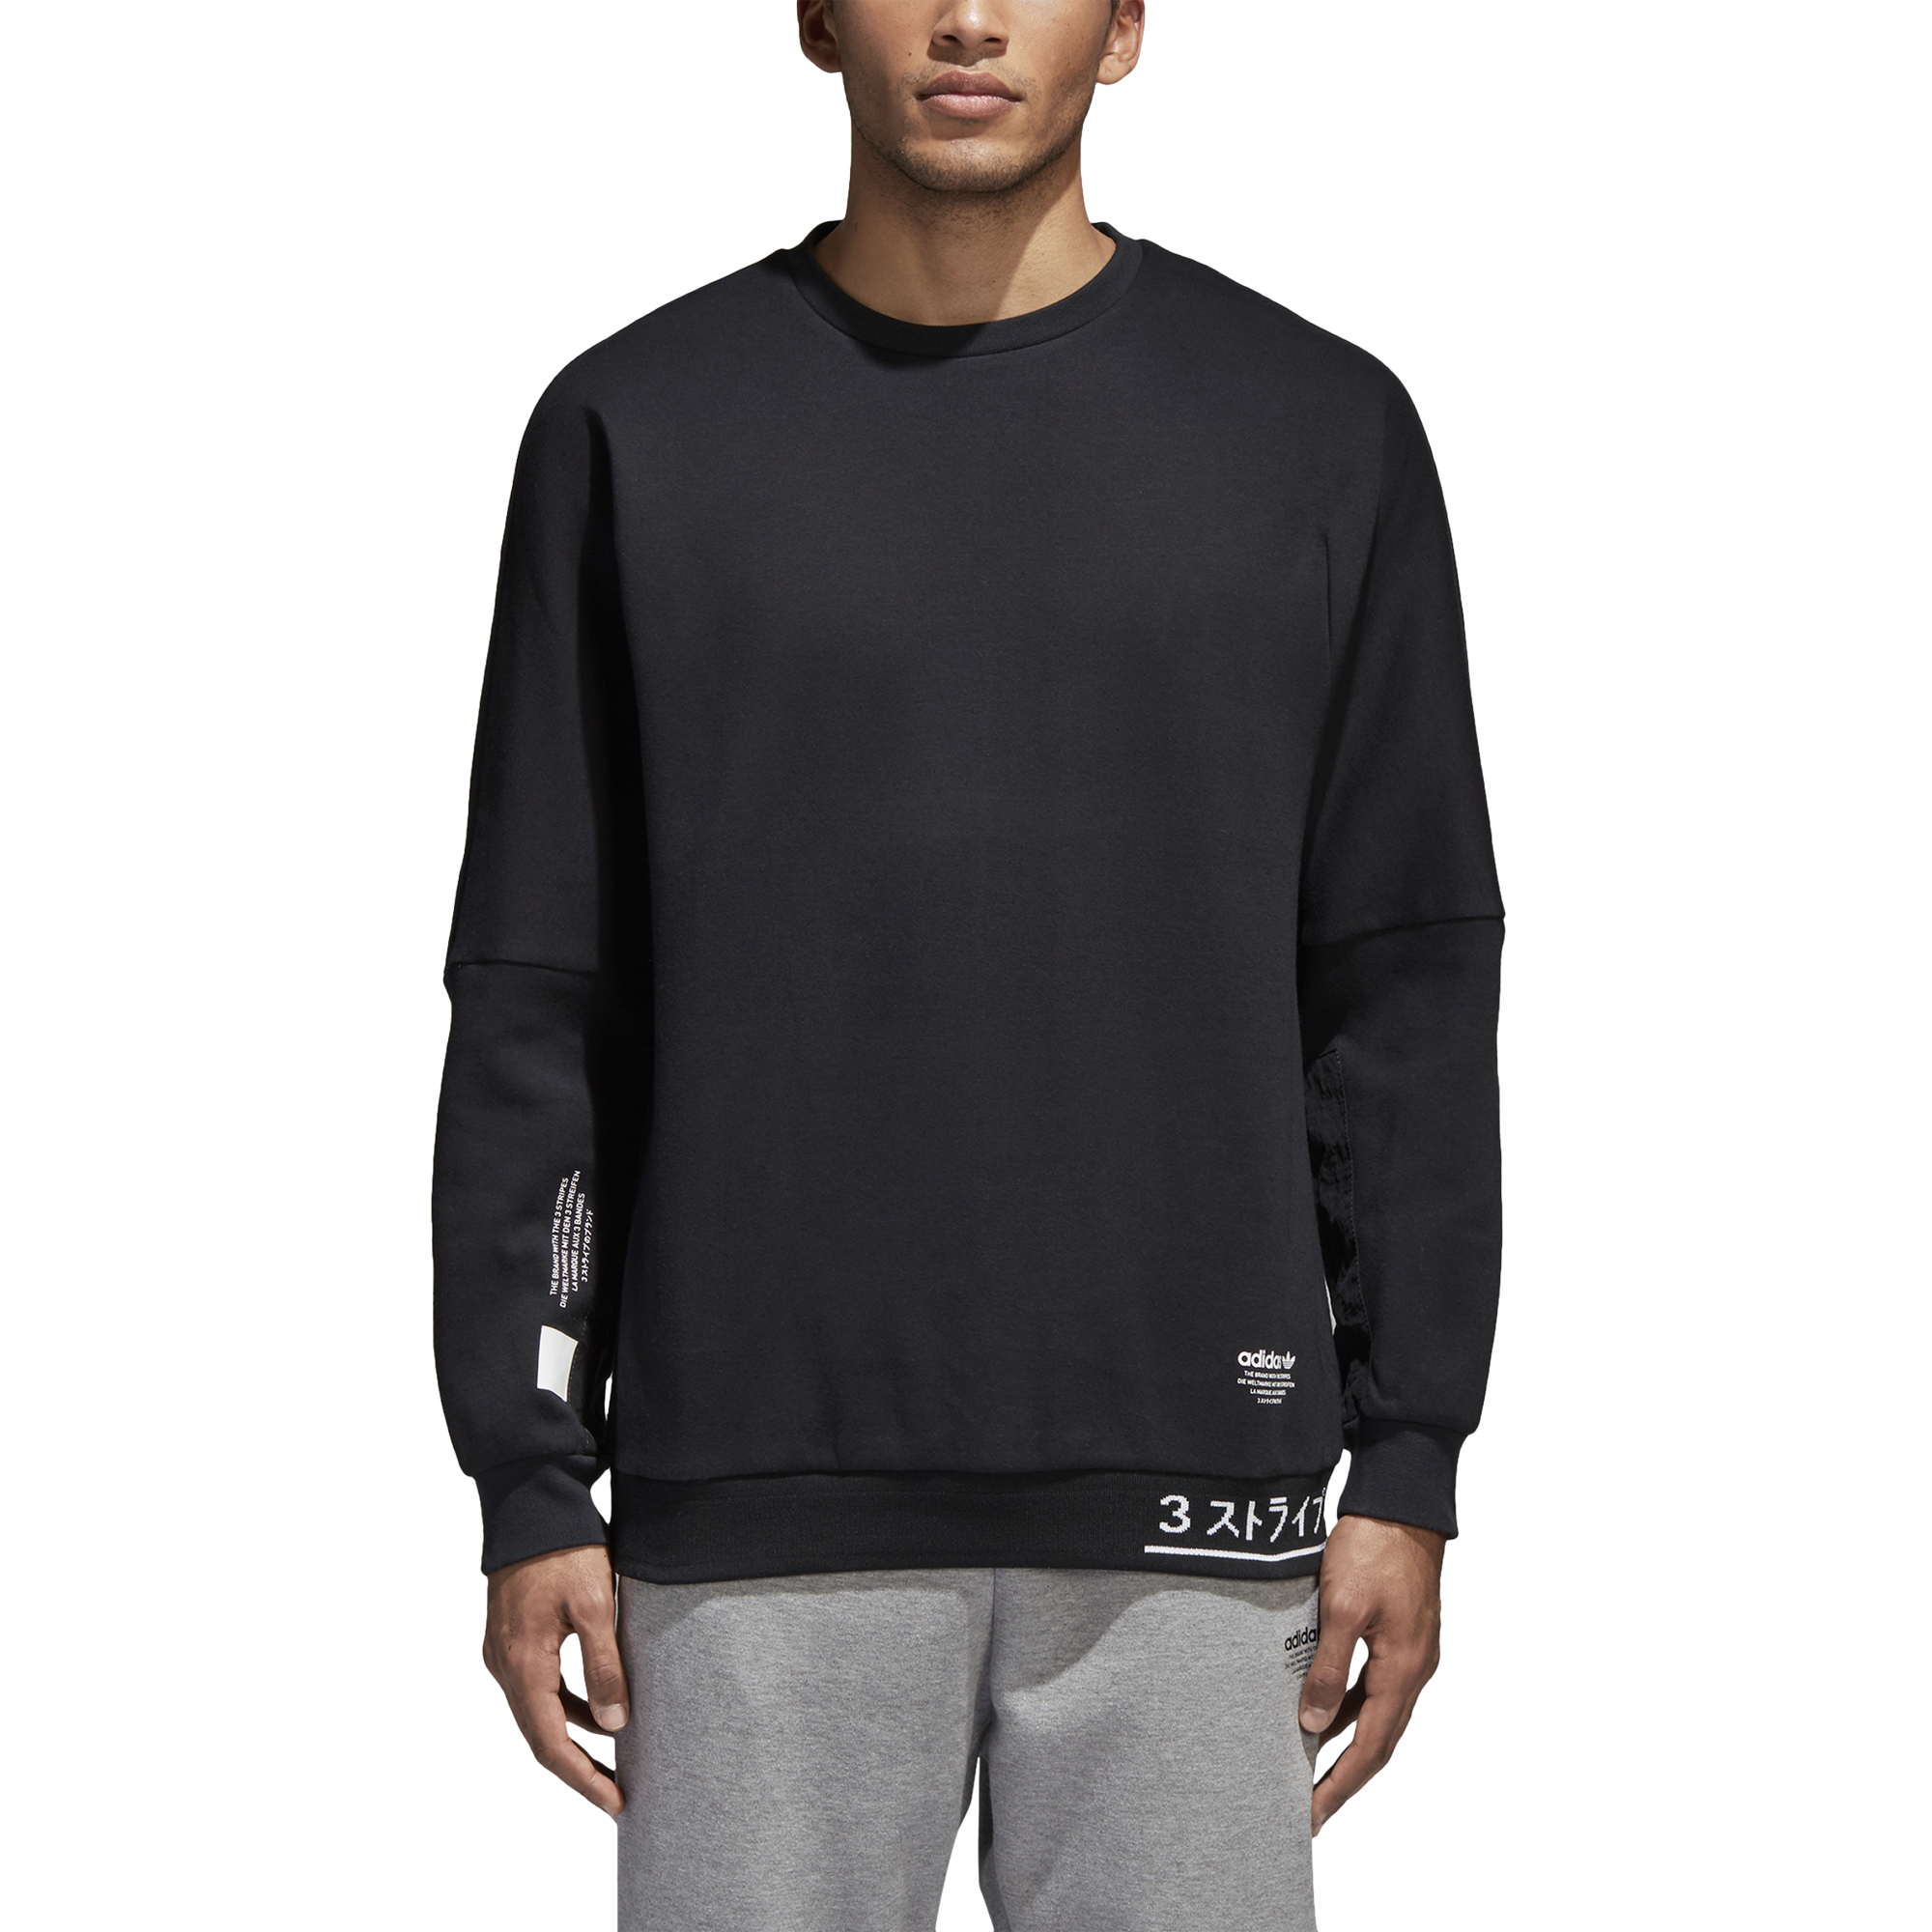 adidas nmd sweater